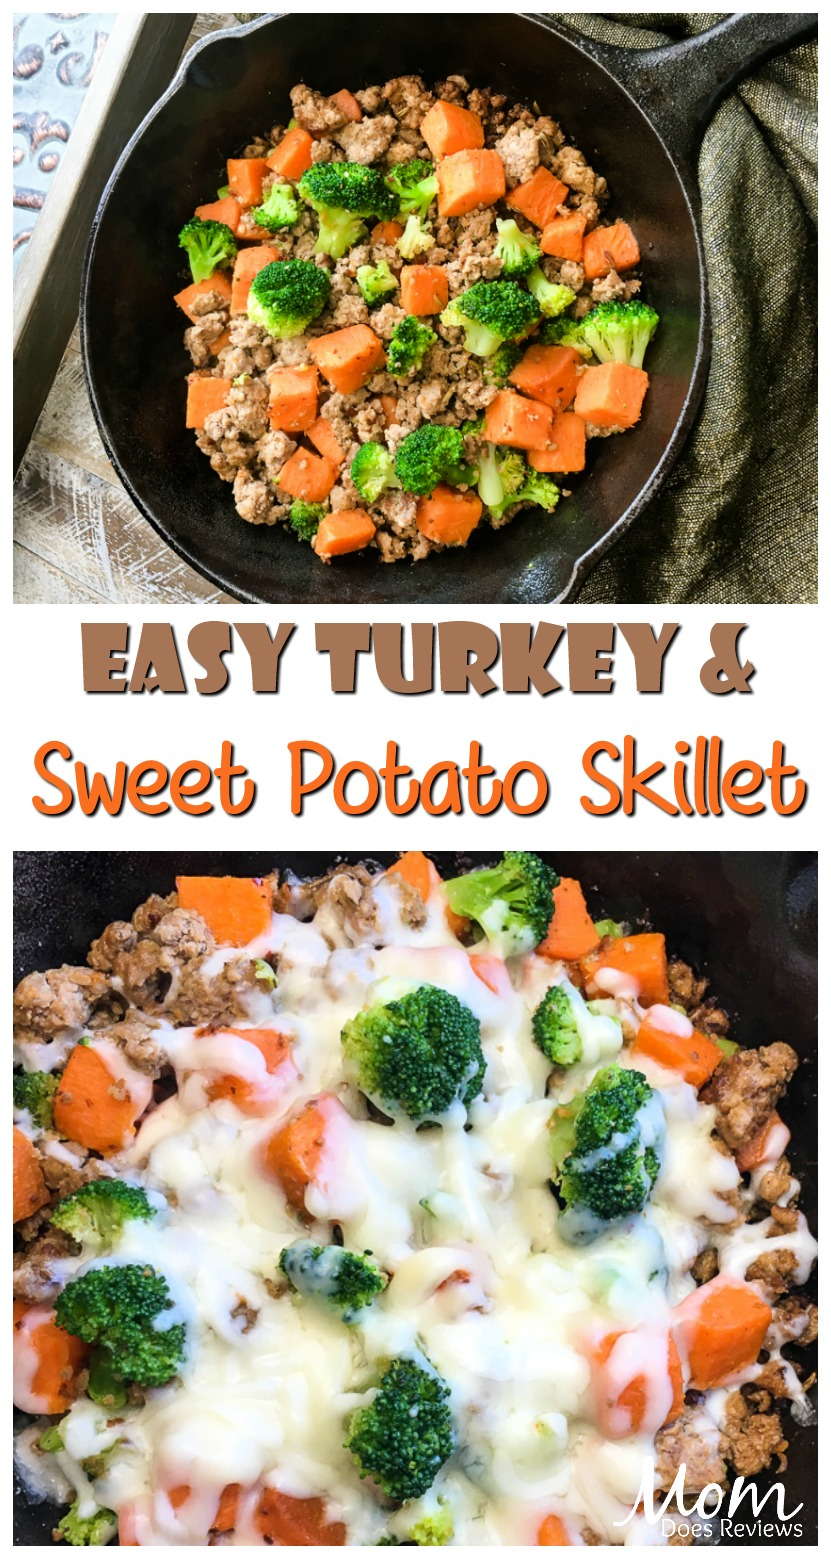 5-Ingredient Turkey and Sweet Potato Skillet #recipe #skilletmeal #onepanmeal #turkey #getinmybelly